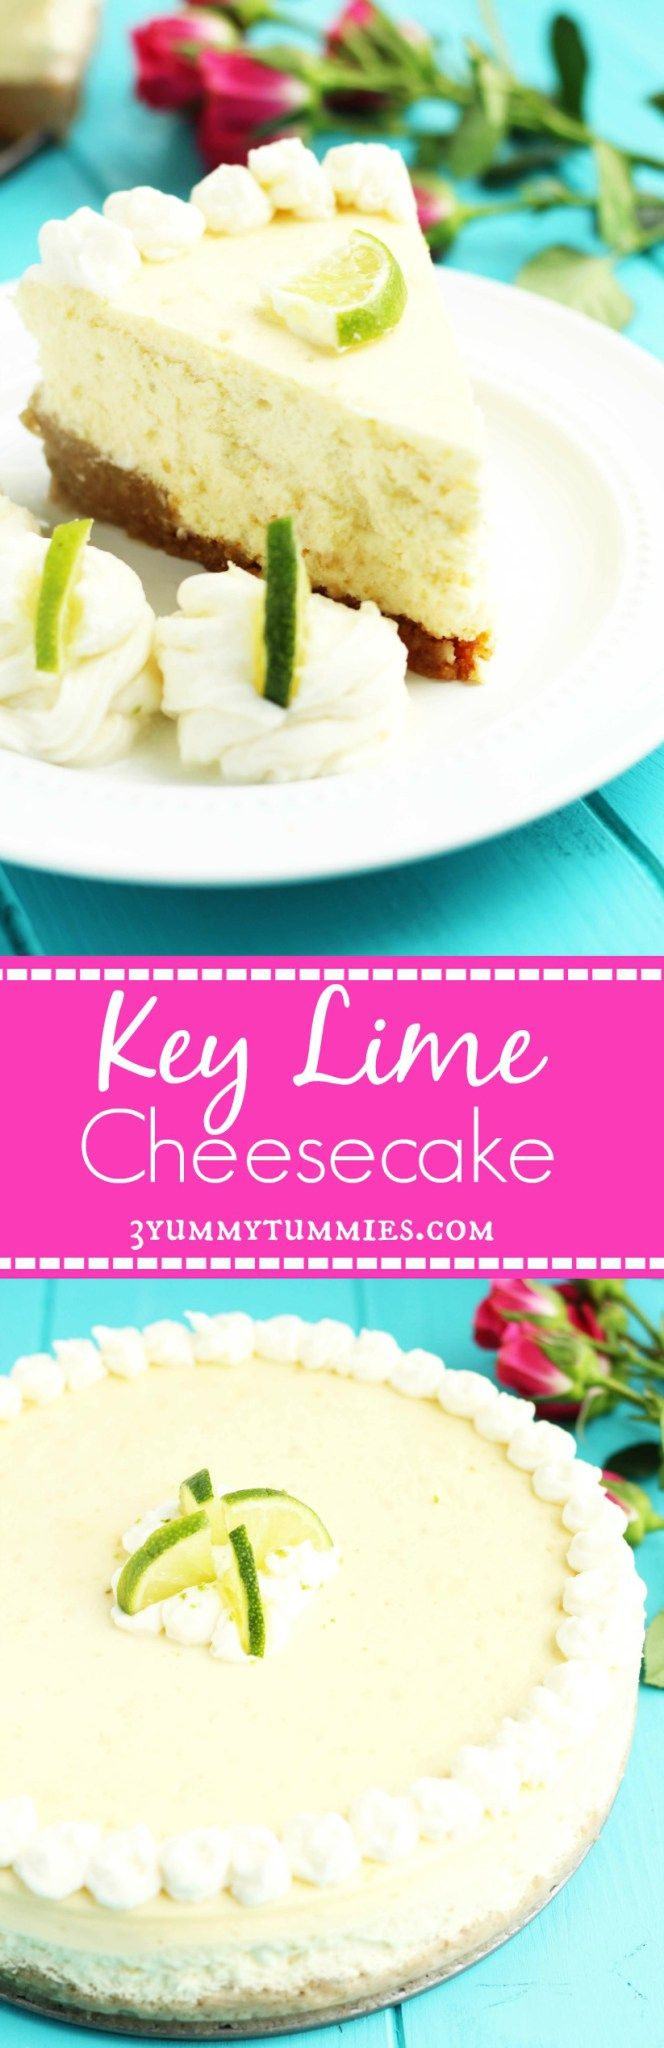 Key Lime Cheesecake  Crust: 2 C. Graham Cracker Crumbs ¼ C. Sugar 4 Tbsp…